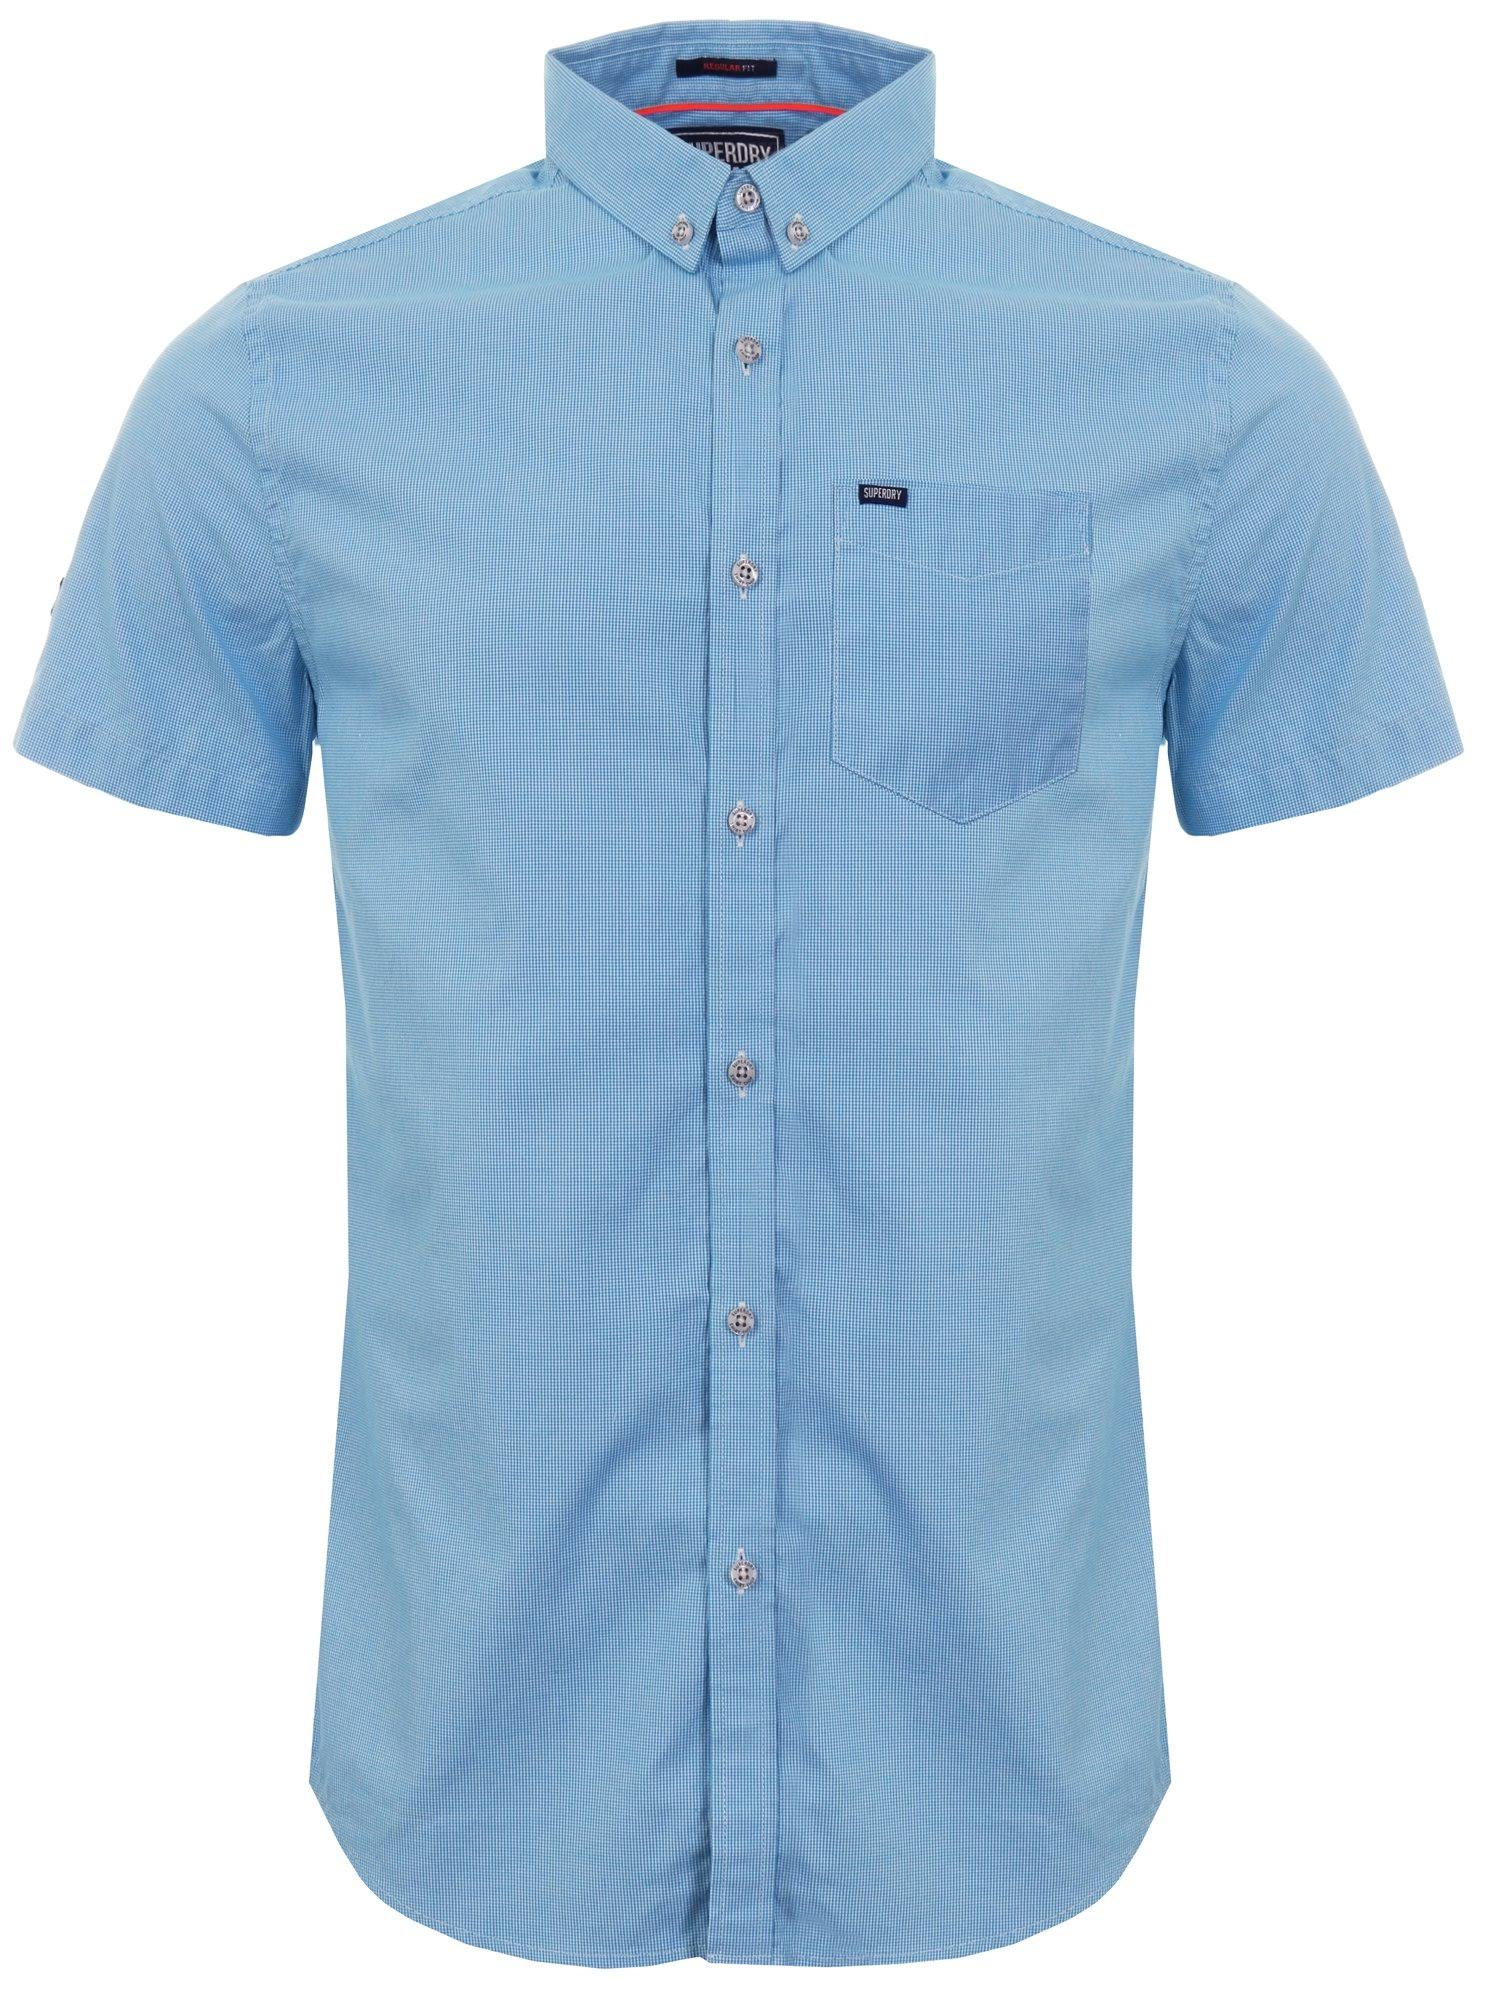 Blue Universität Oxford S Bd Ultimate Superdry fTFqYx